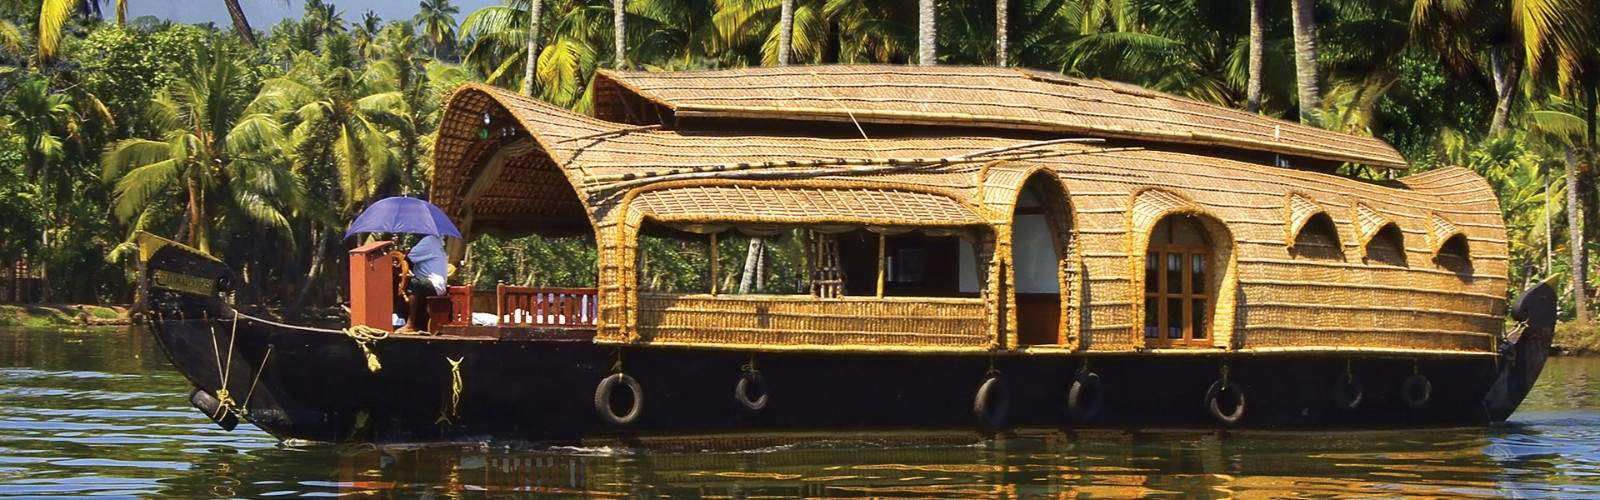 Kerala and the Southern Highlights Tour Tour | Wendy Wu Tours